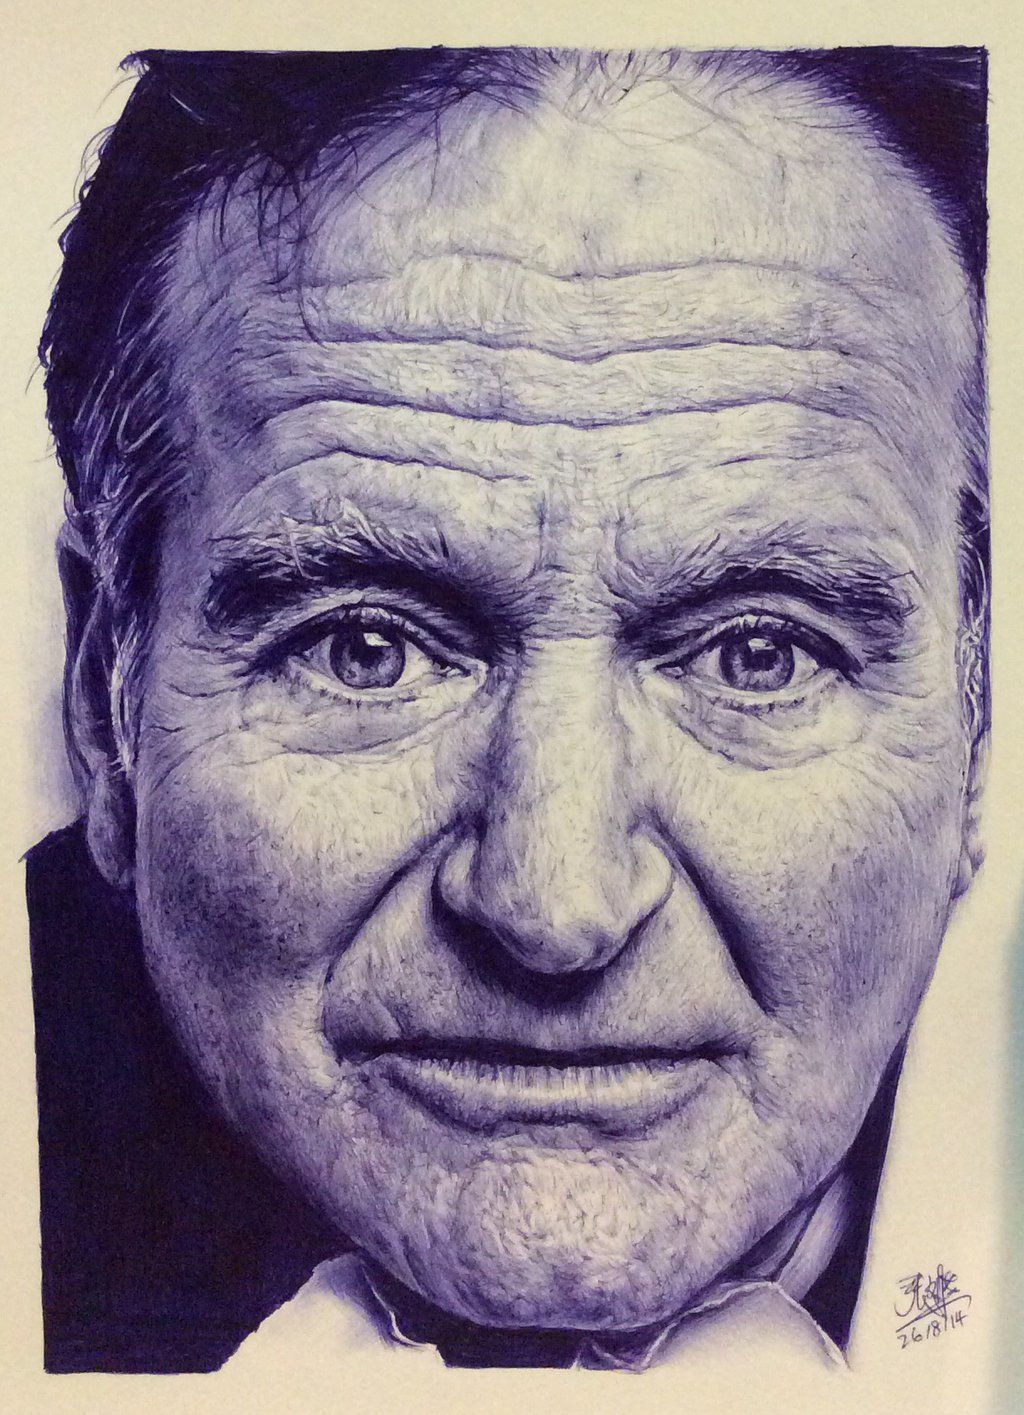 Color drawing pens for artists - Ballpoint Pen Drawing Of Robin Williams By Chaseroflight Deviantart Com On Deviantart